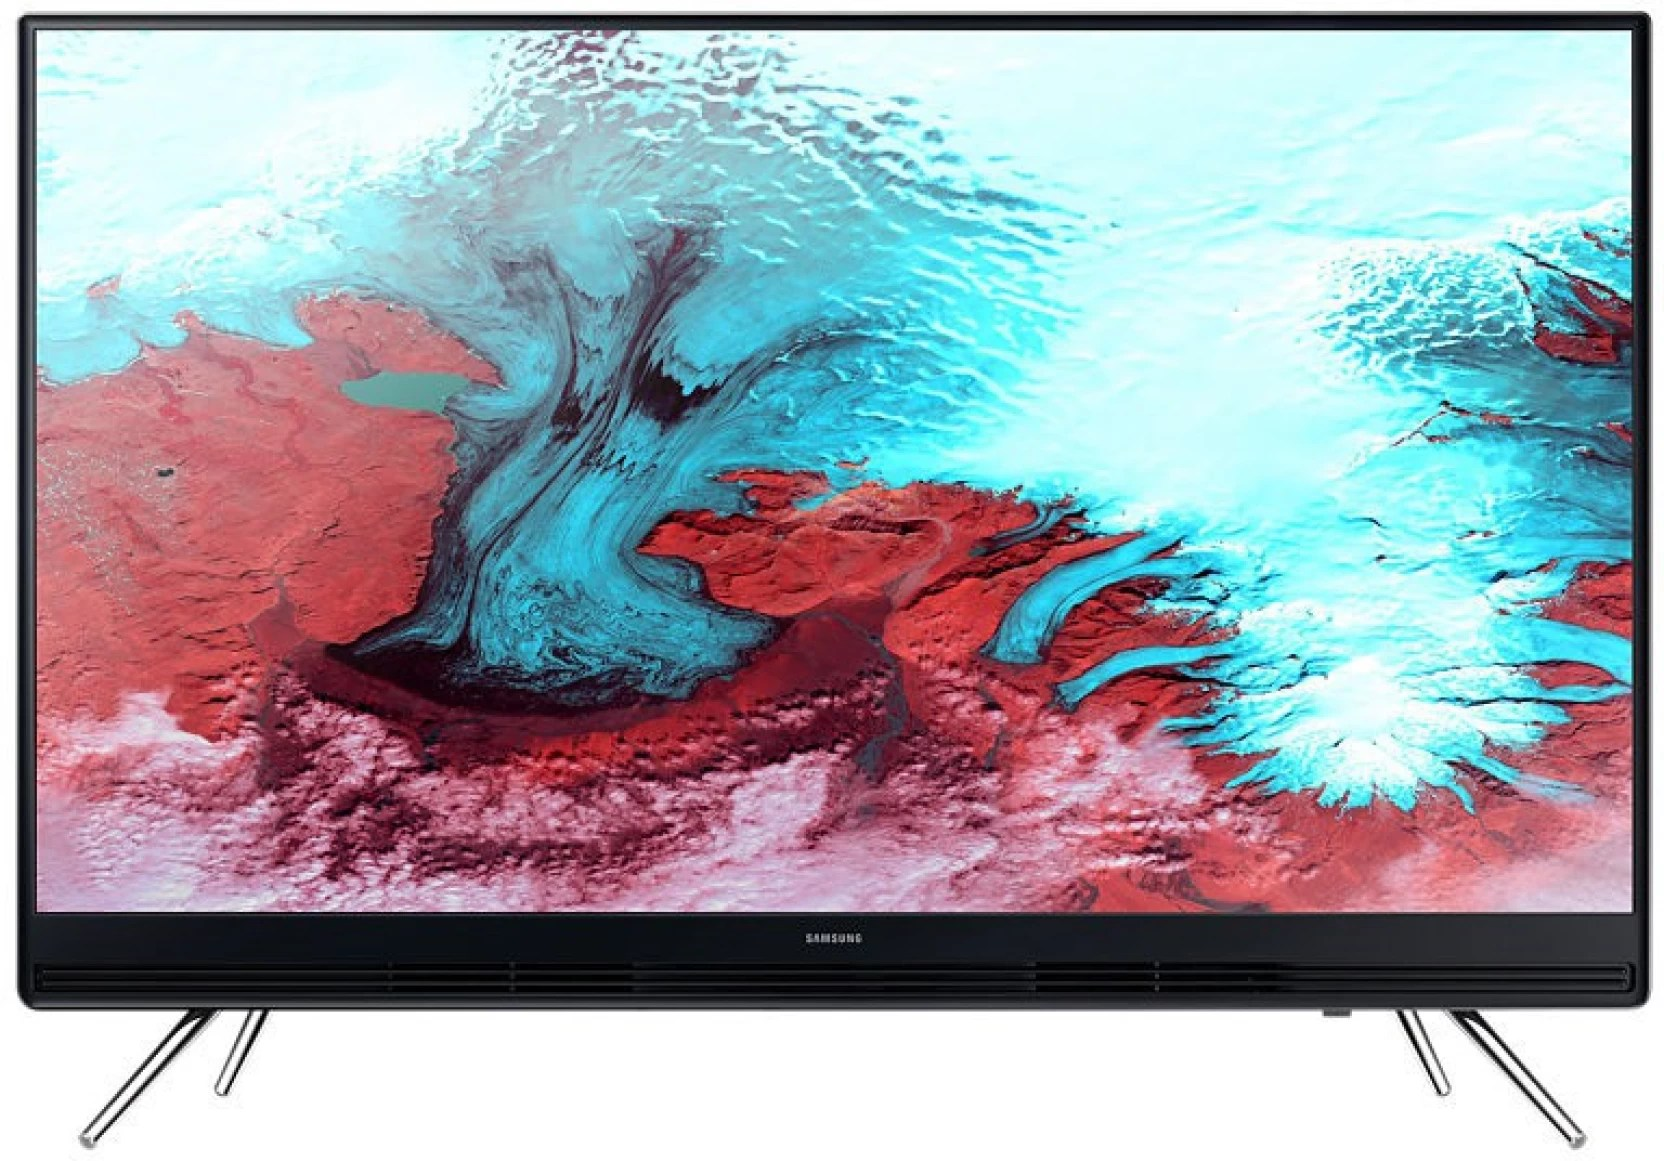 43 Inch Tv Samsung 108cm 43 Inch Full Hd Led Tv